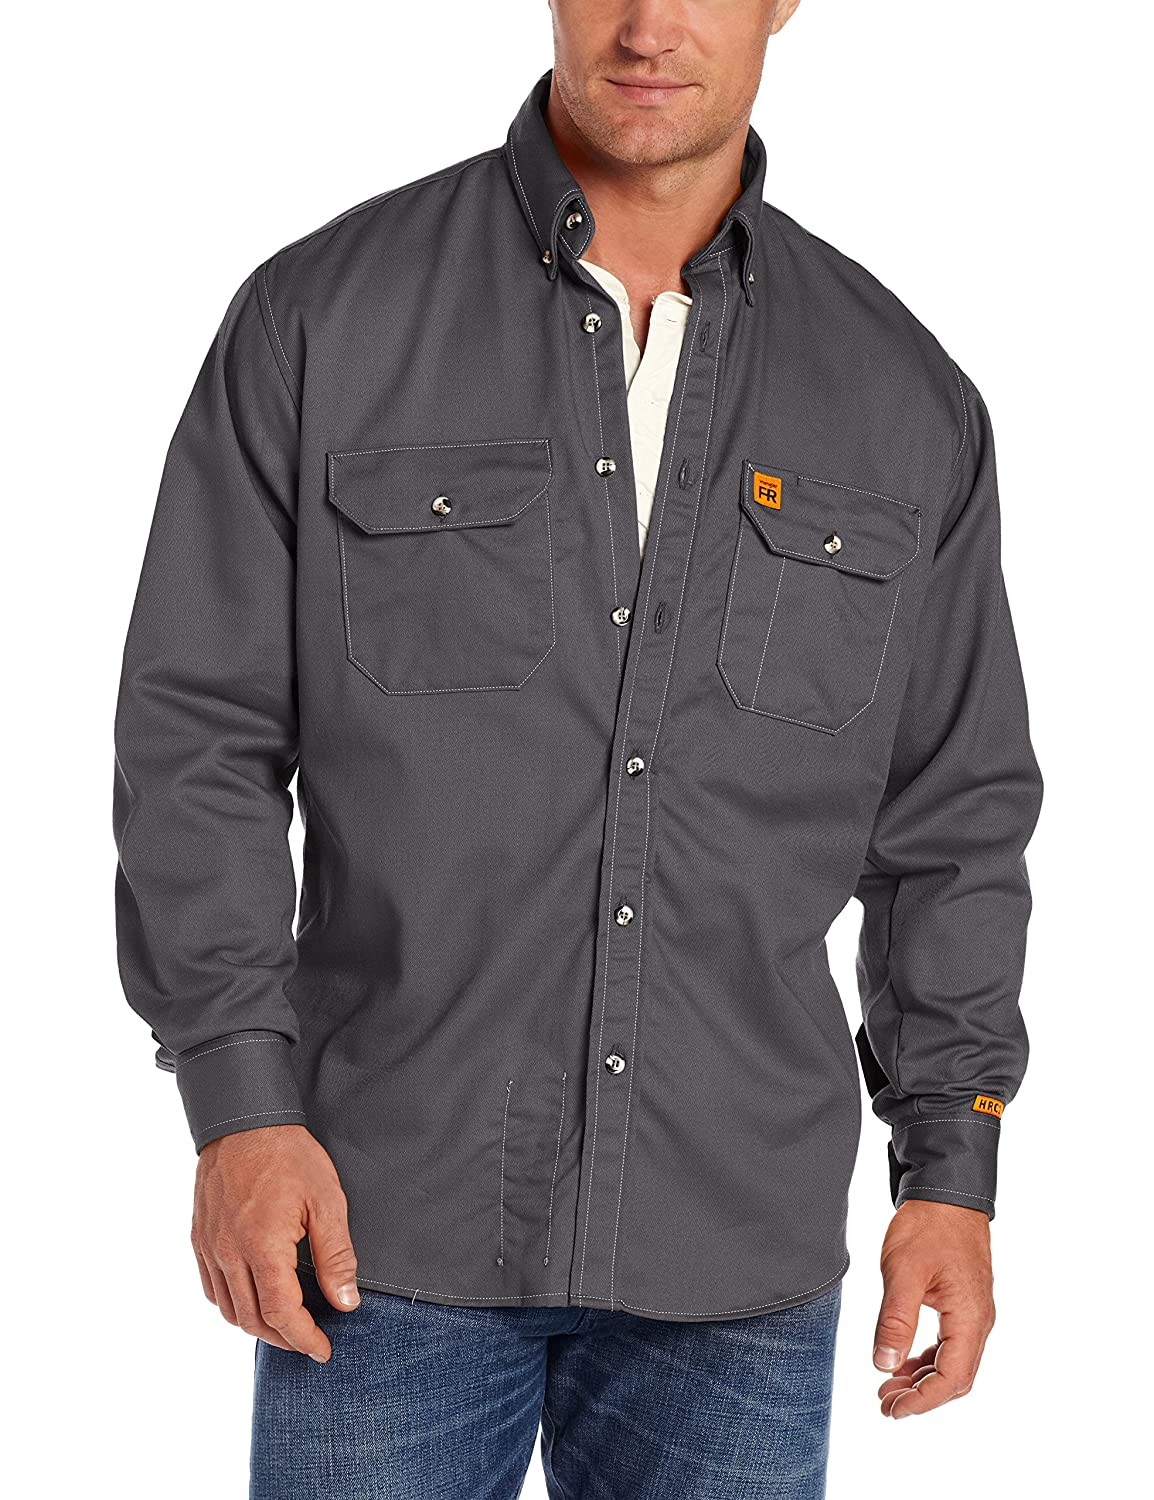 Wrangler Riggs Workwear Mens Fire Resistant Work Shirt with Two Front Pockets